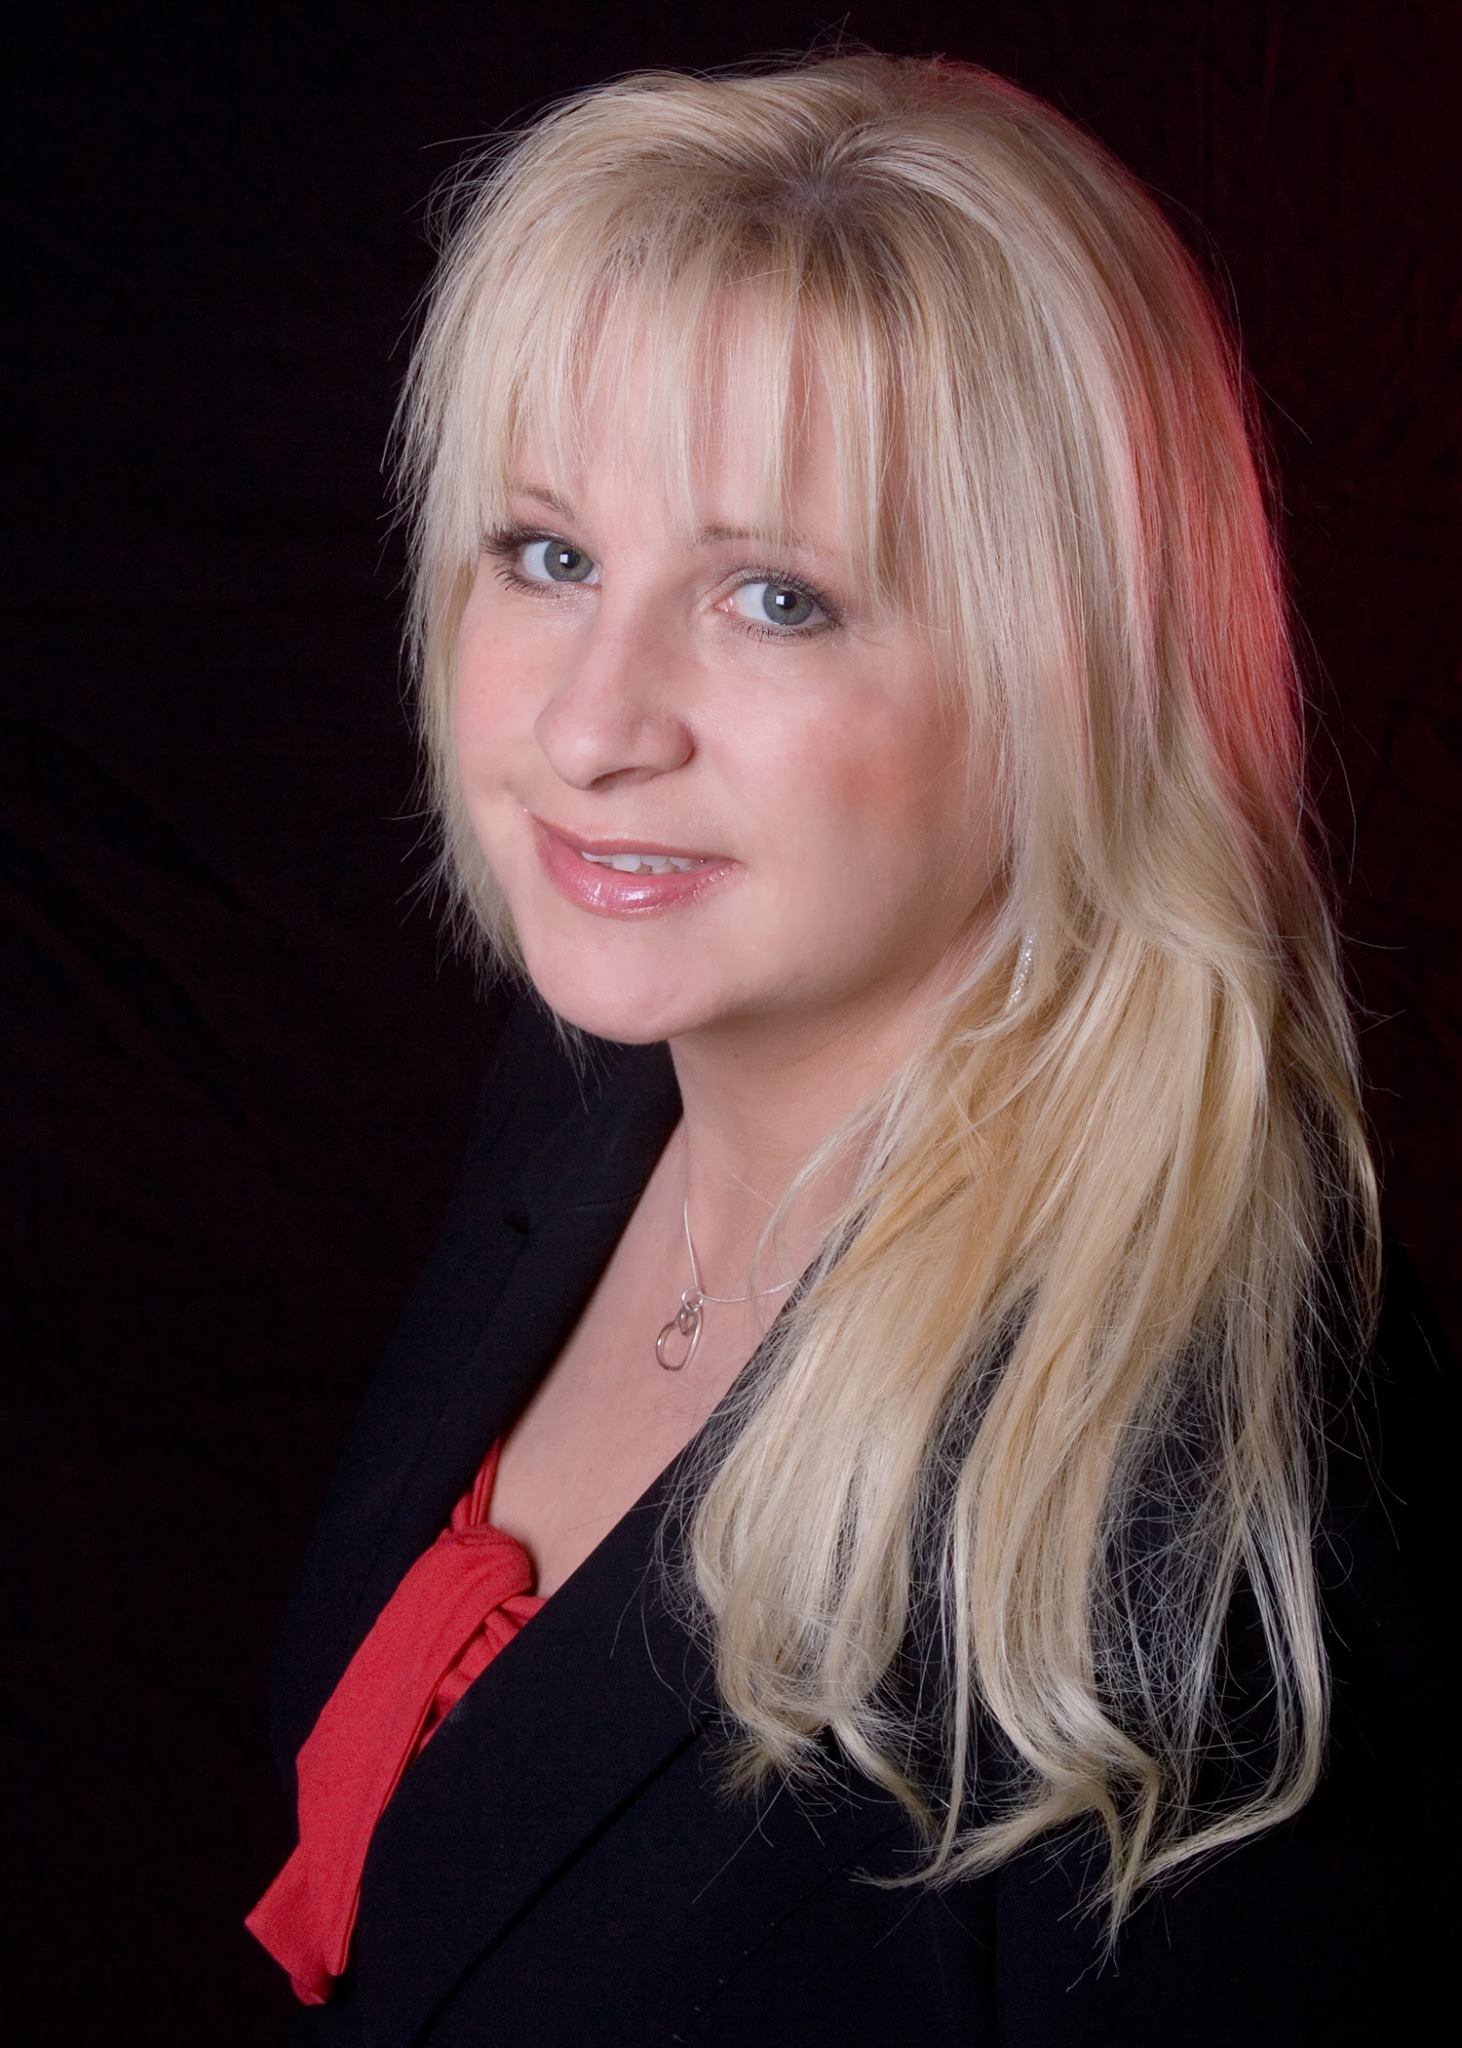 Donna Stewart - Medium, Tutor and Author